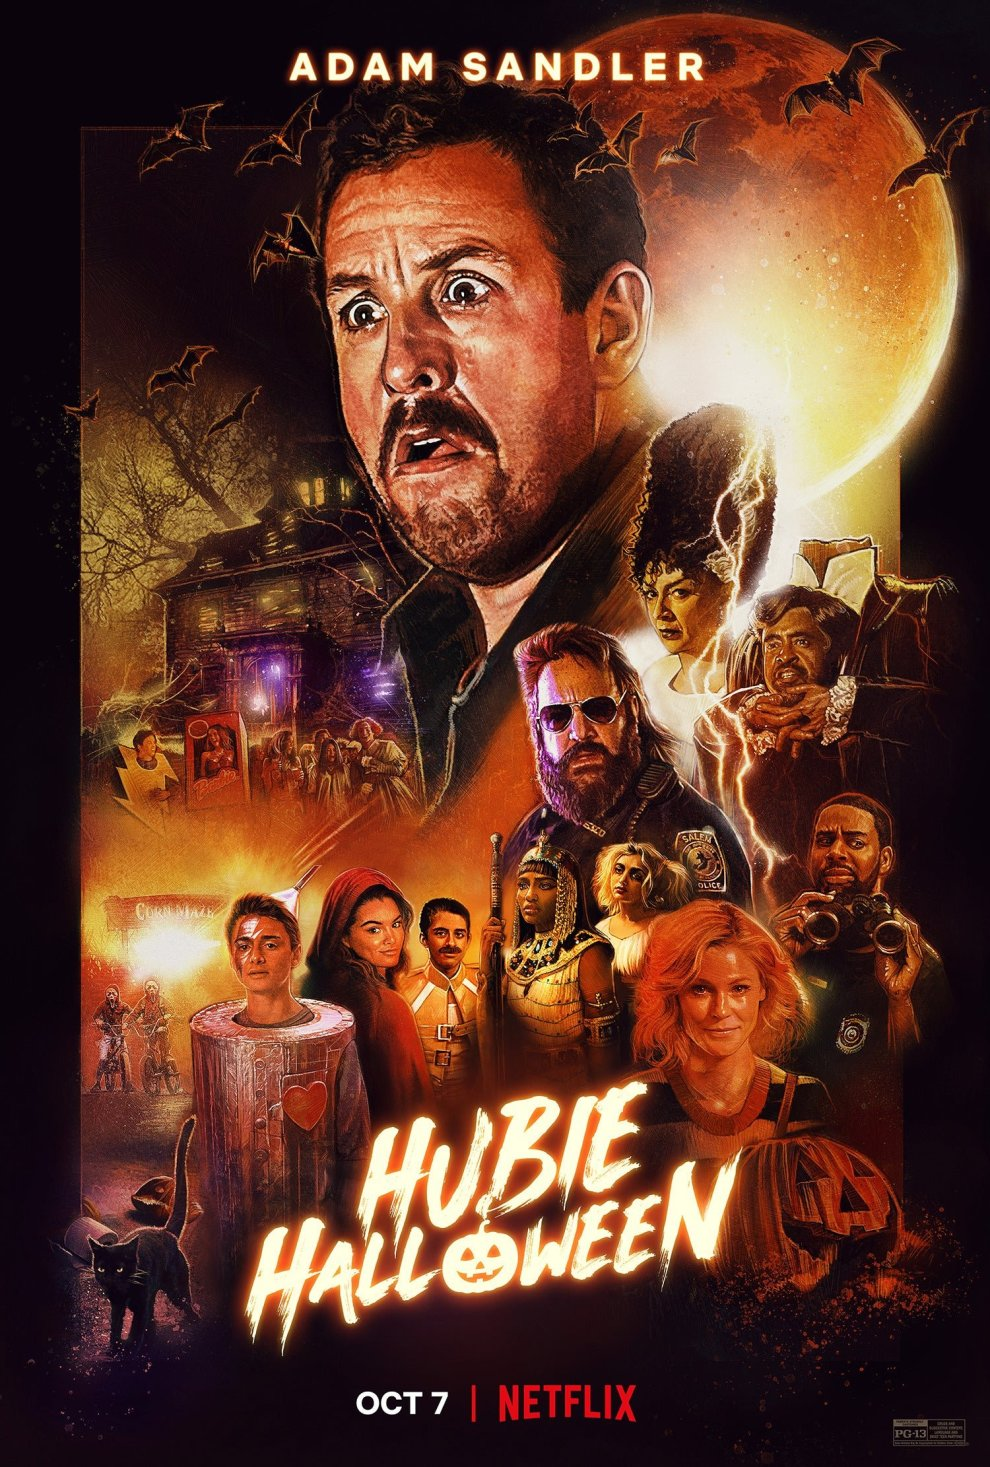 Hubie Halloween -Trailer and Movie Poster released